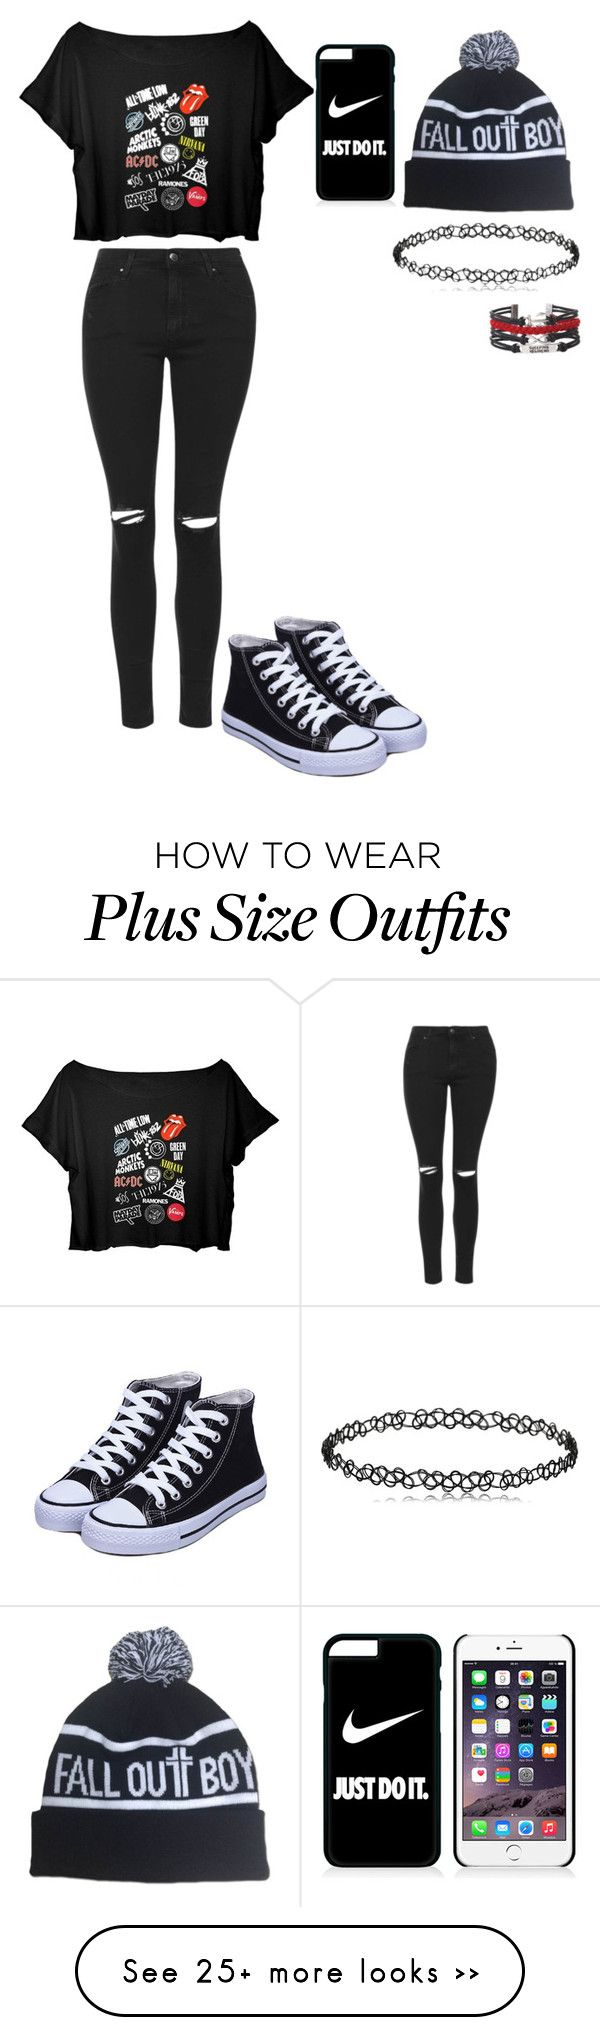 """Untitled #416"" by meowliv on Polyvore featuring Topshop and NIKE"